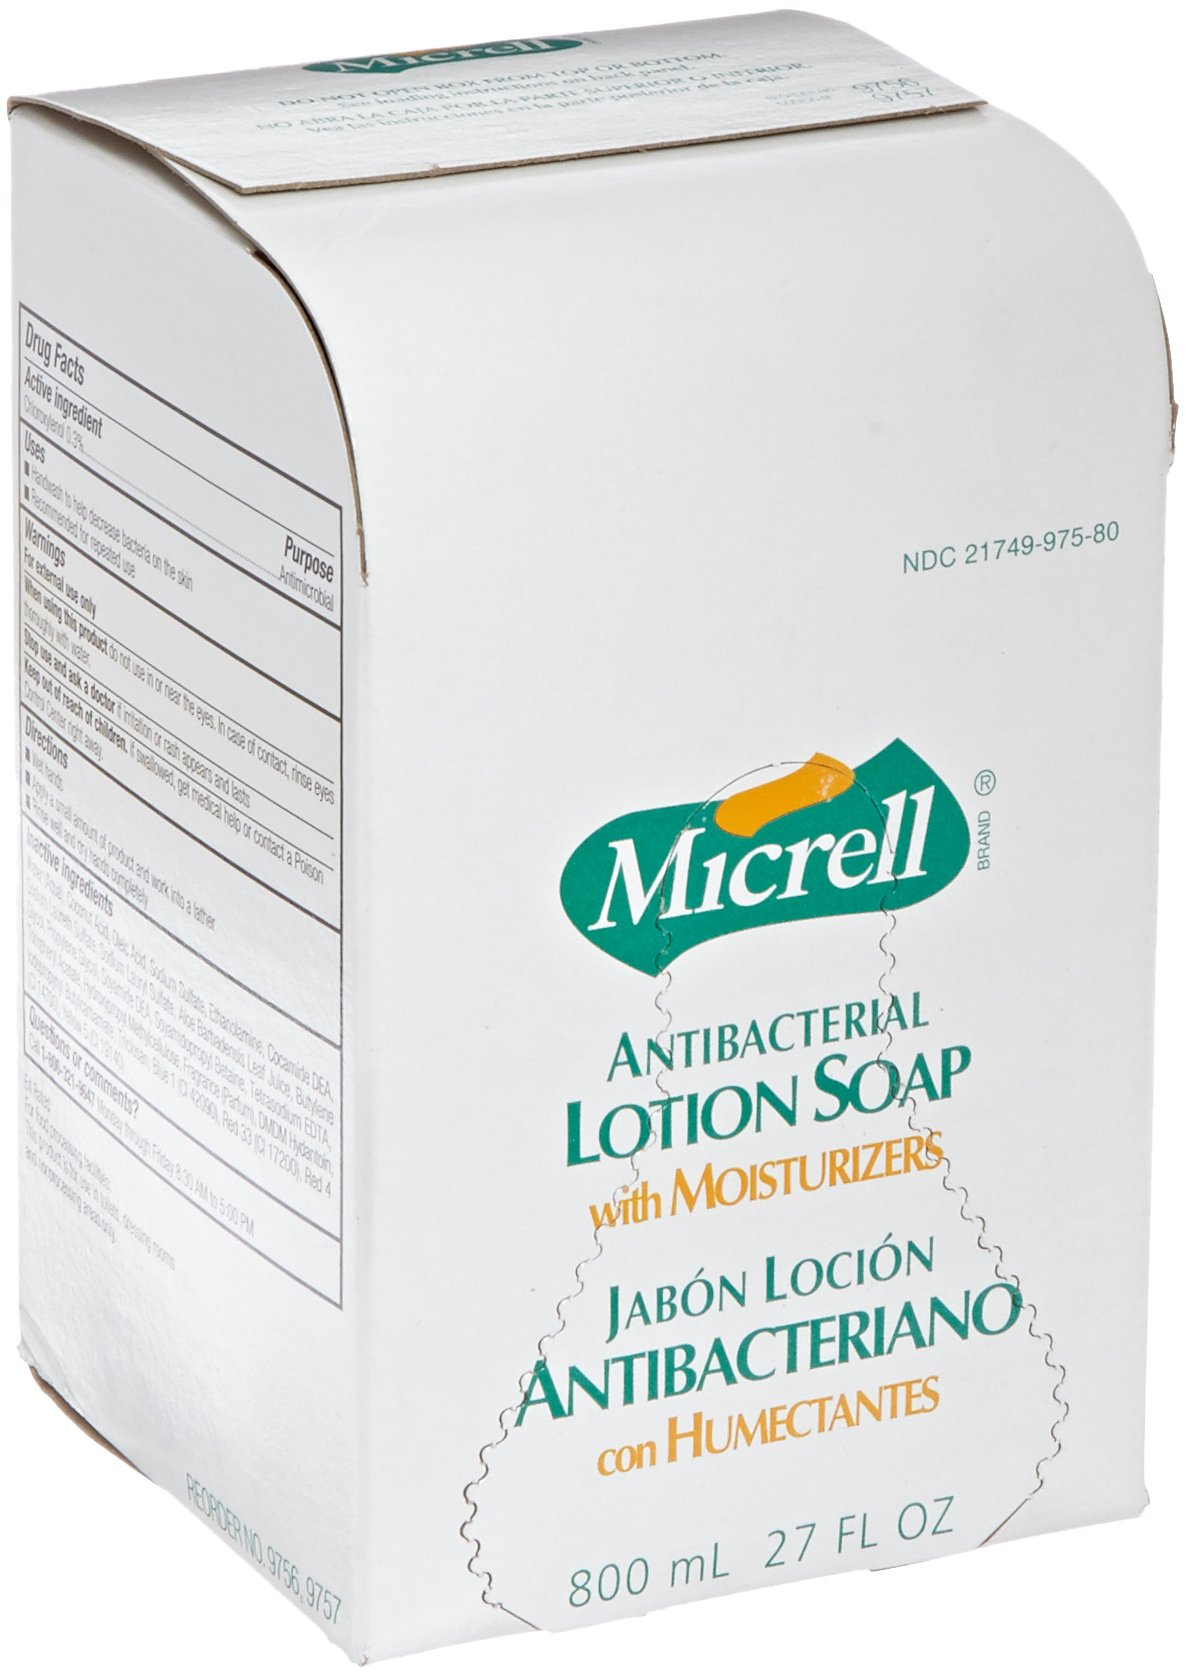 Micrell 9756-06 Antibacterial Lotion Soap, 800 mL Refill (Pack of 6)